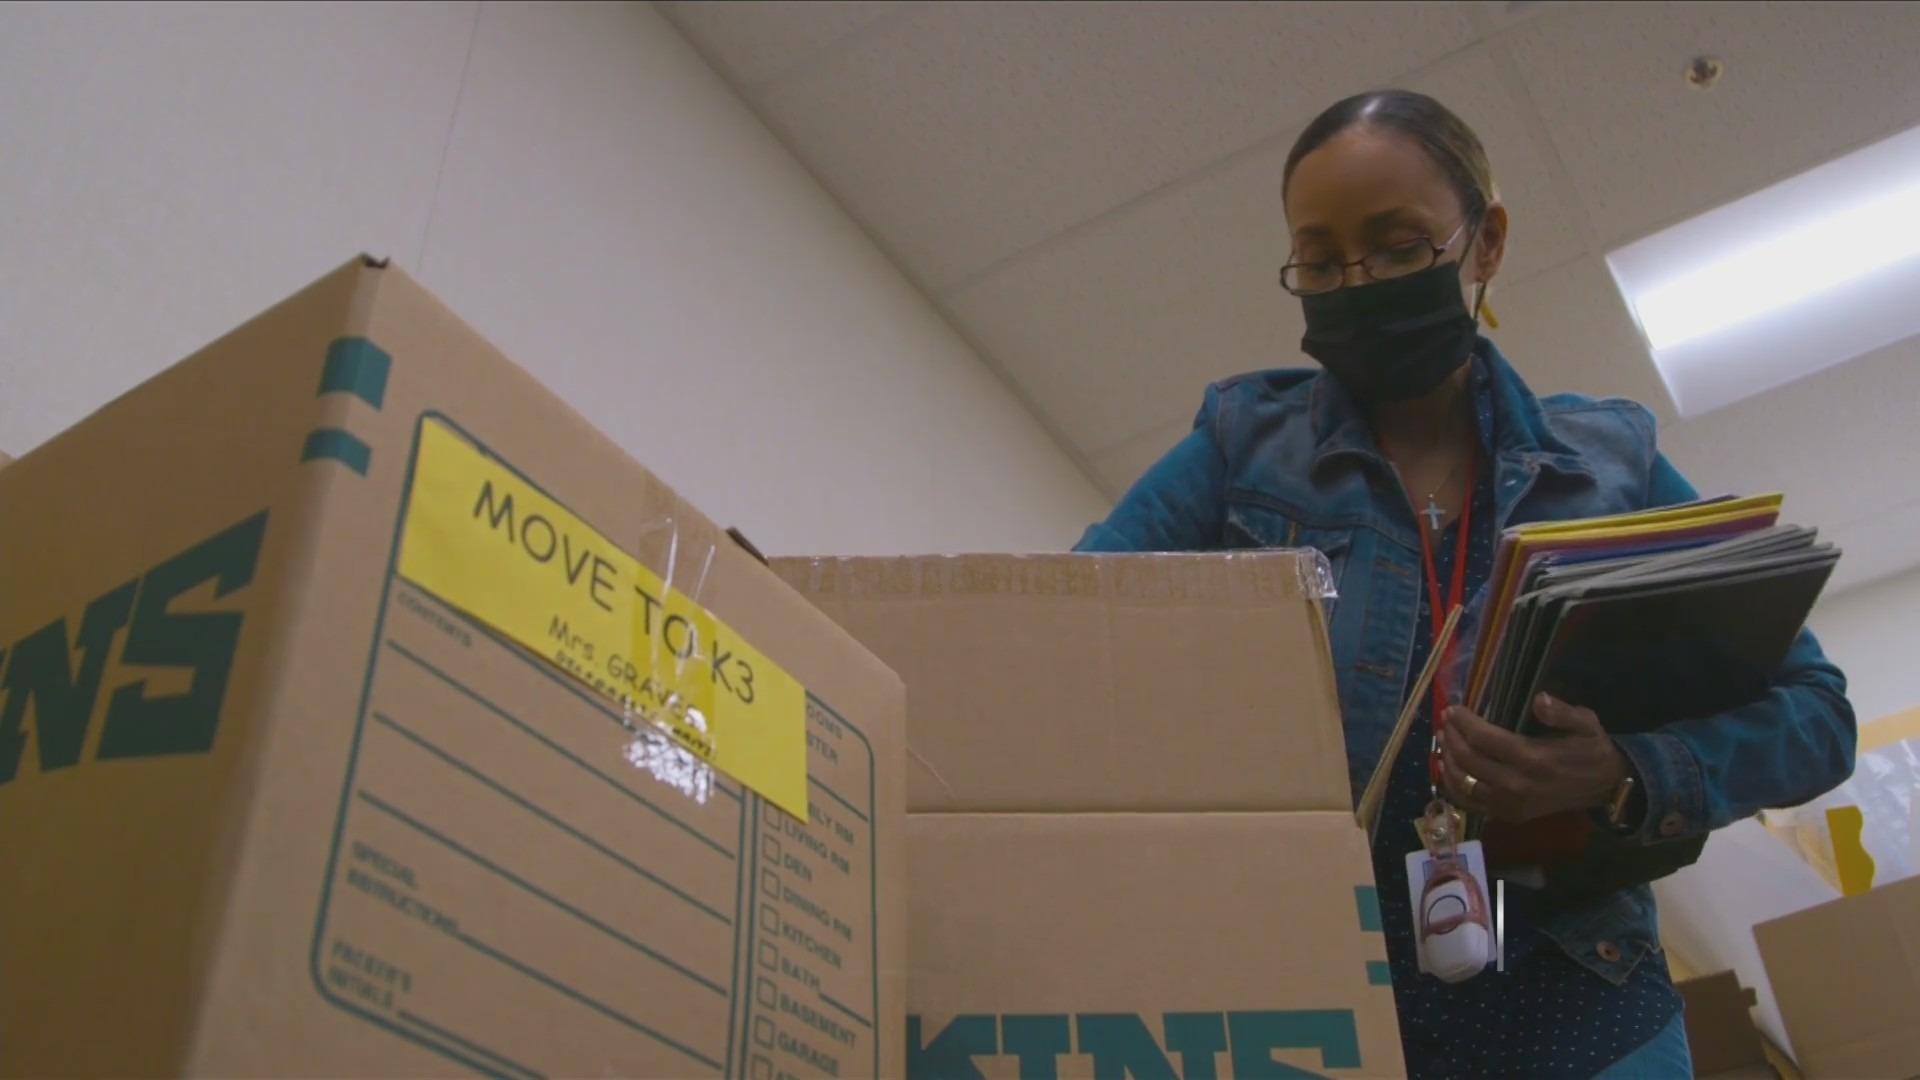 Fresno Unified staff work to prevent classroom COVID-19 infections